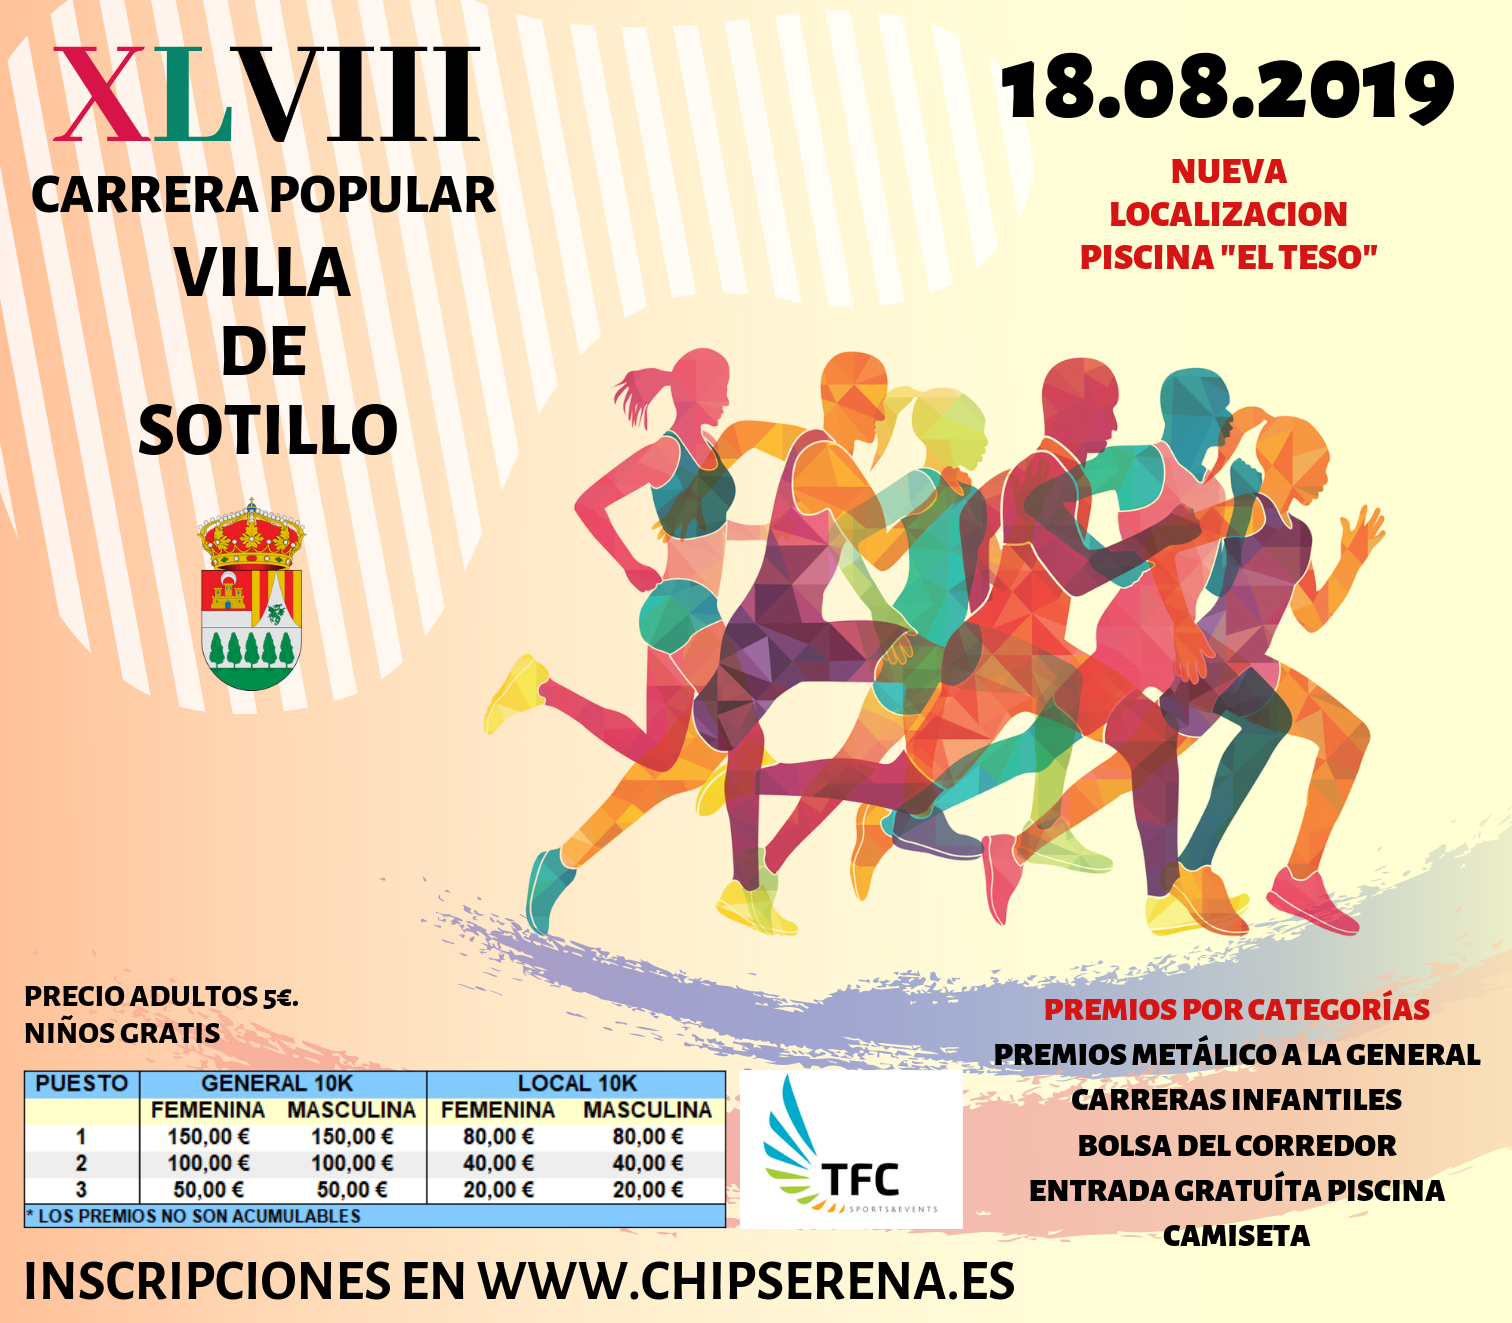 XLVIII Carrera Popular Villa de Sotillo